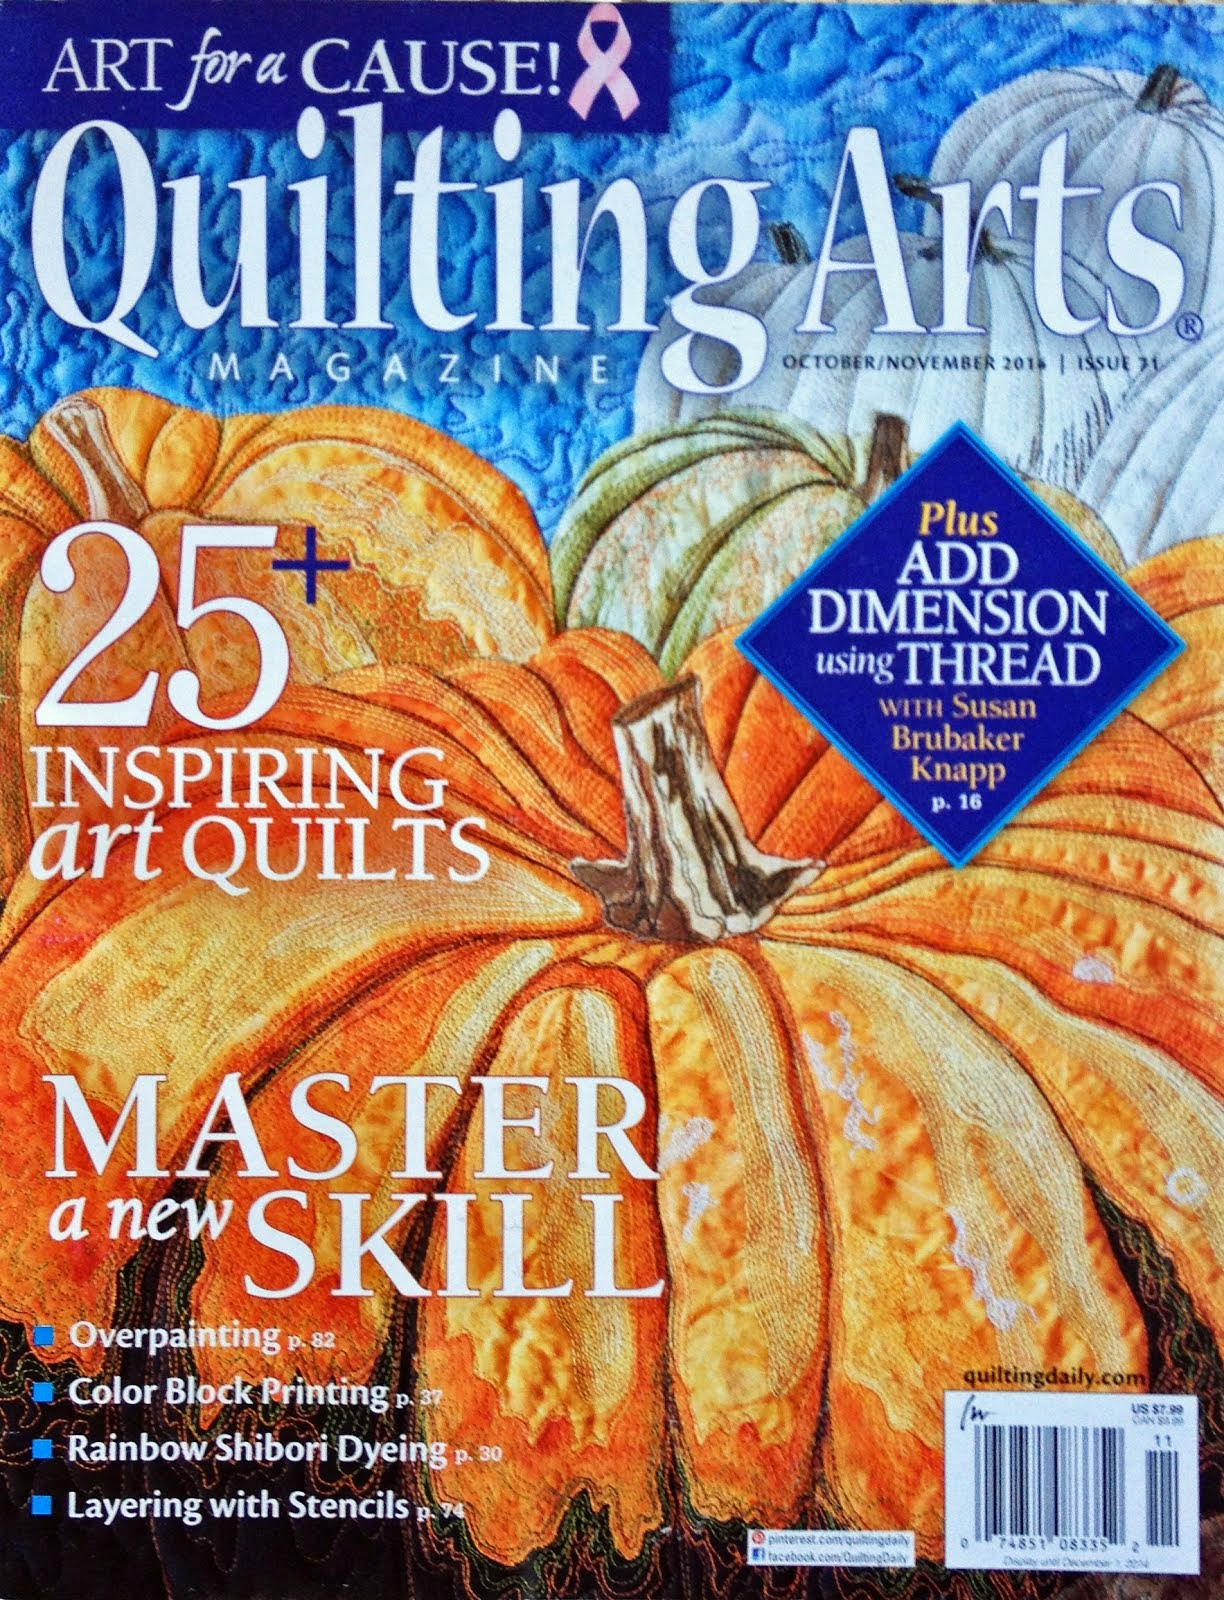 See My Work in Quilting Arts Magazines Oct/Nov 2014